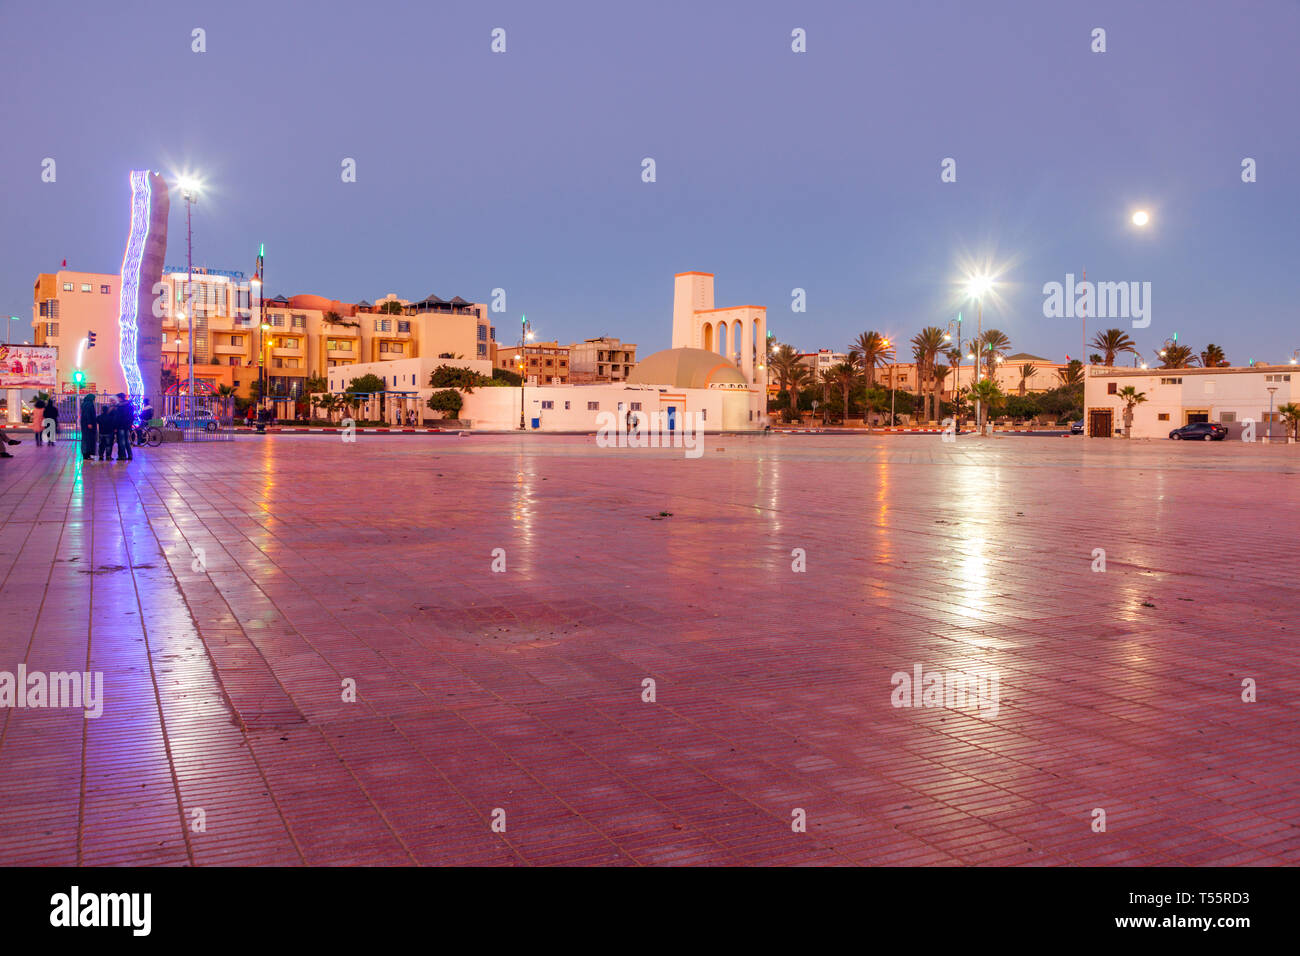 Town square at sunset in Dakhla, Morocco - Stock Image